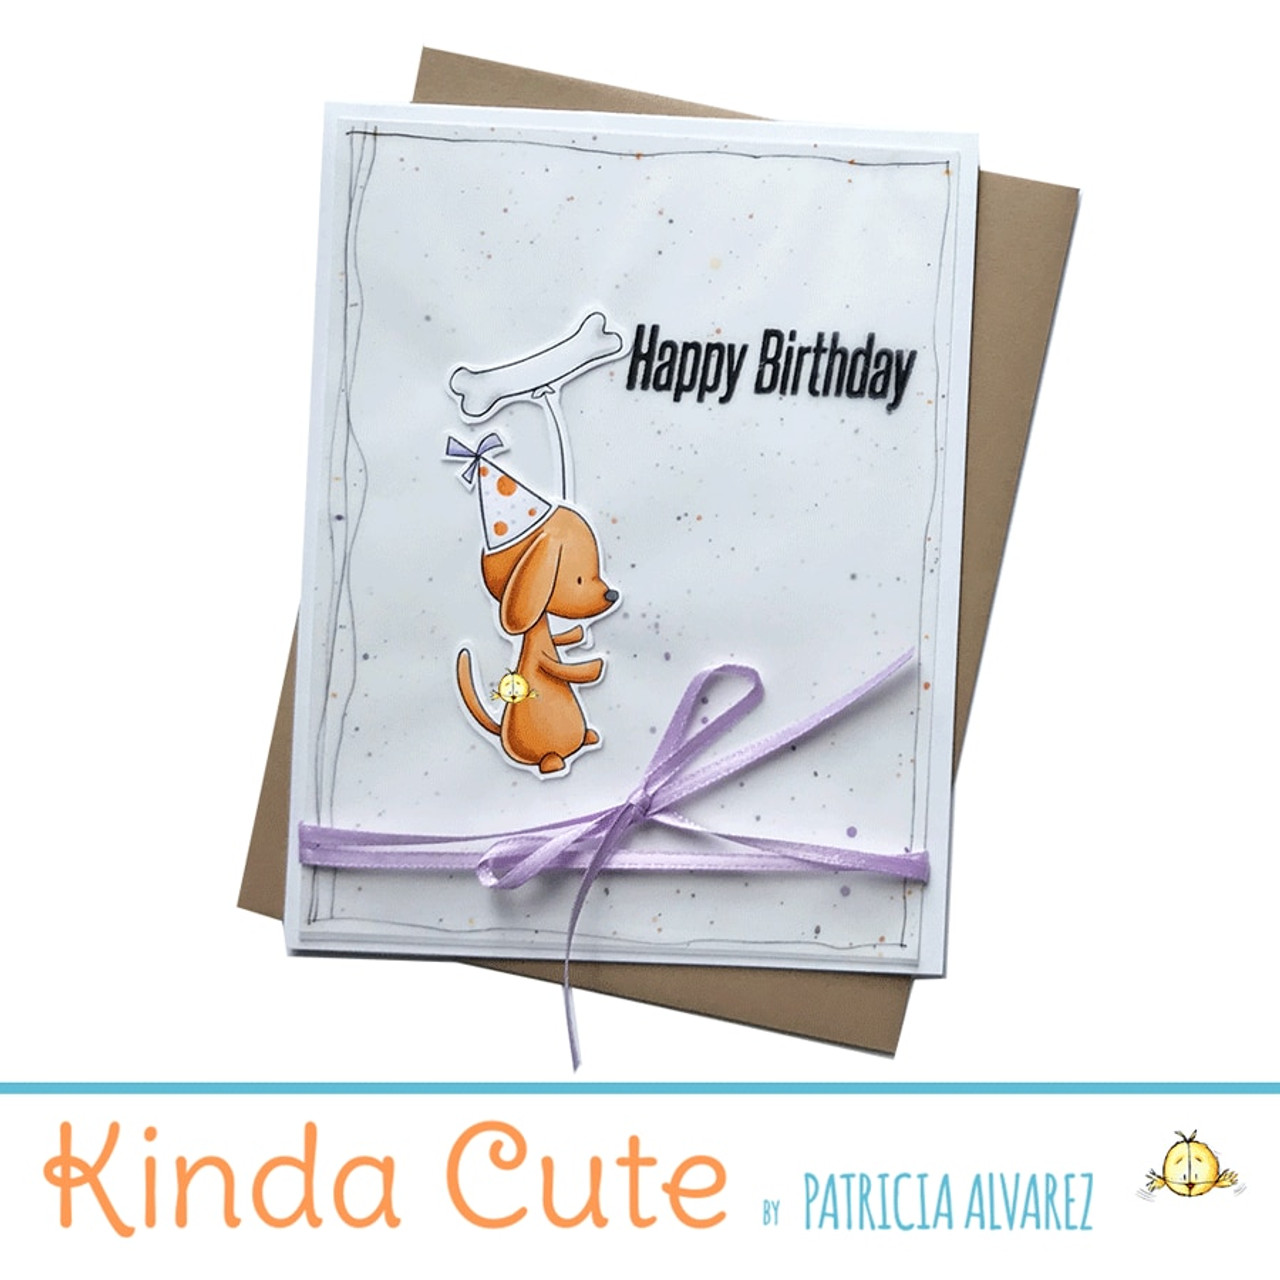 Incredible Happy Birthday Card With A Dog With A Bone Balloon H25 Kinda Personalised Birthday Cards Paralily Jamesorg